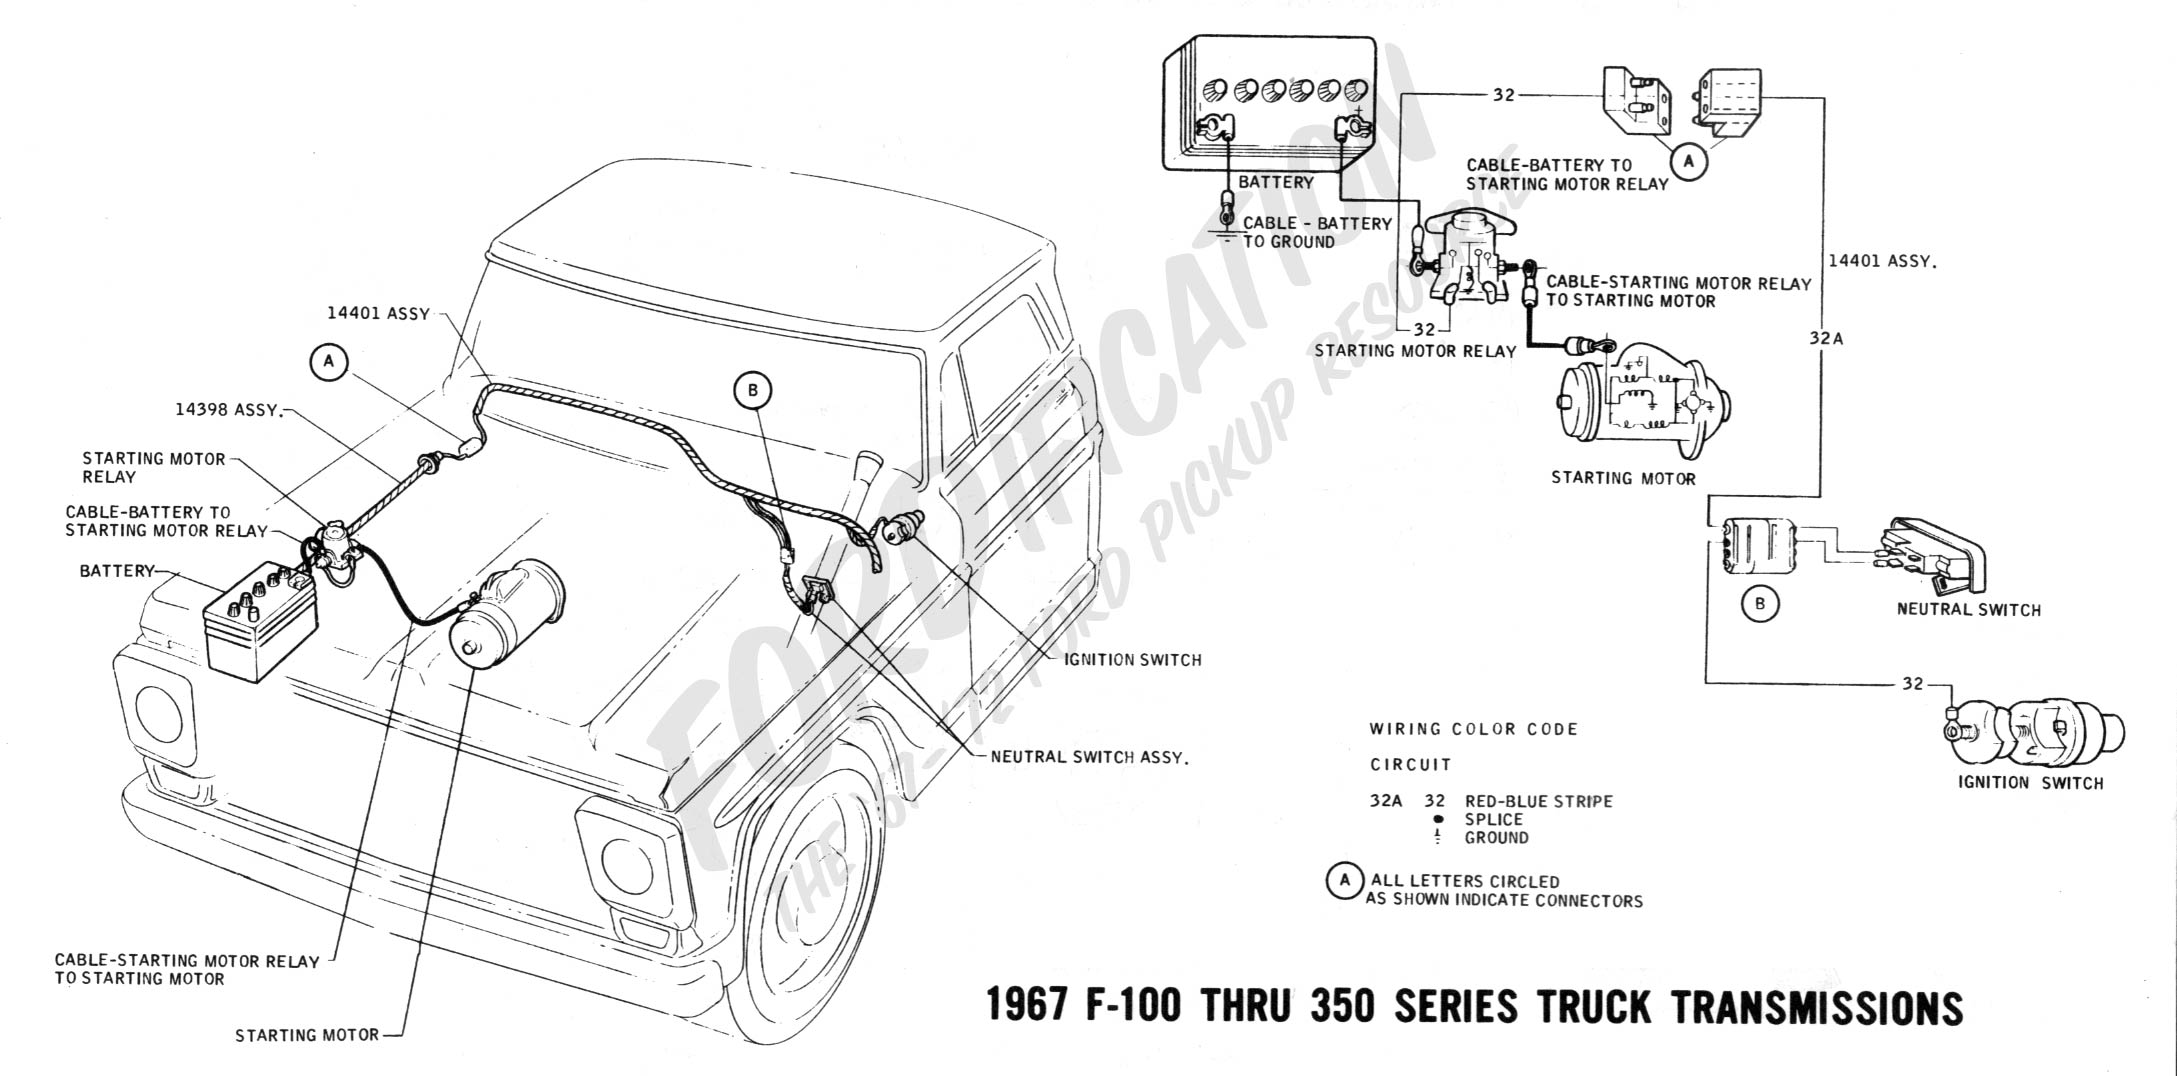 72 ford f100 wiring diagram 1997 international 4700 truck technical drawings and schematics section h